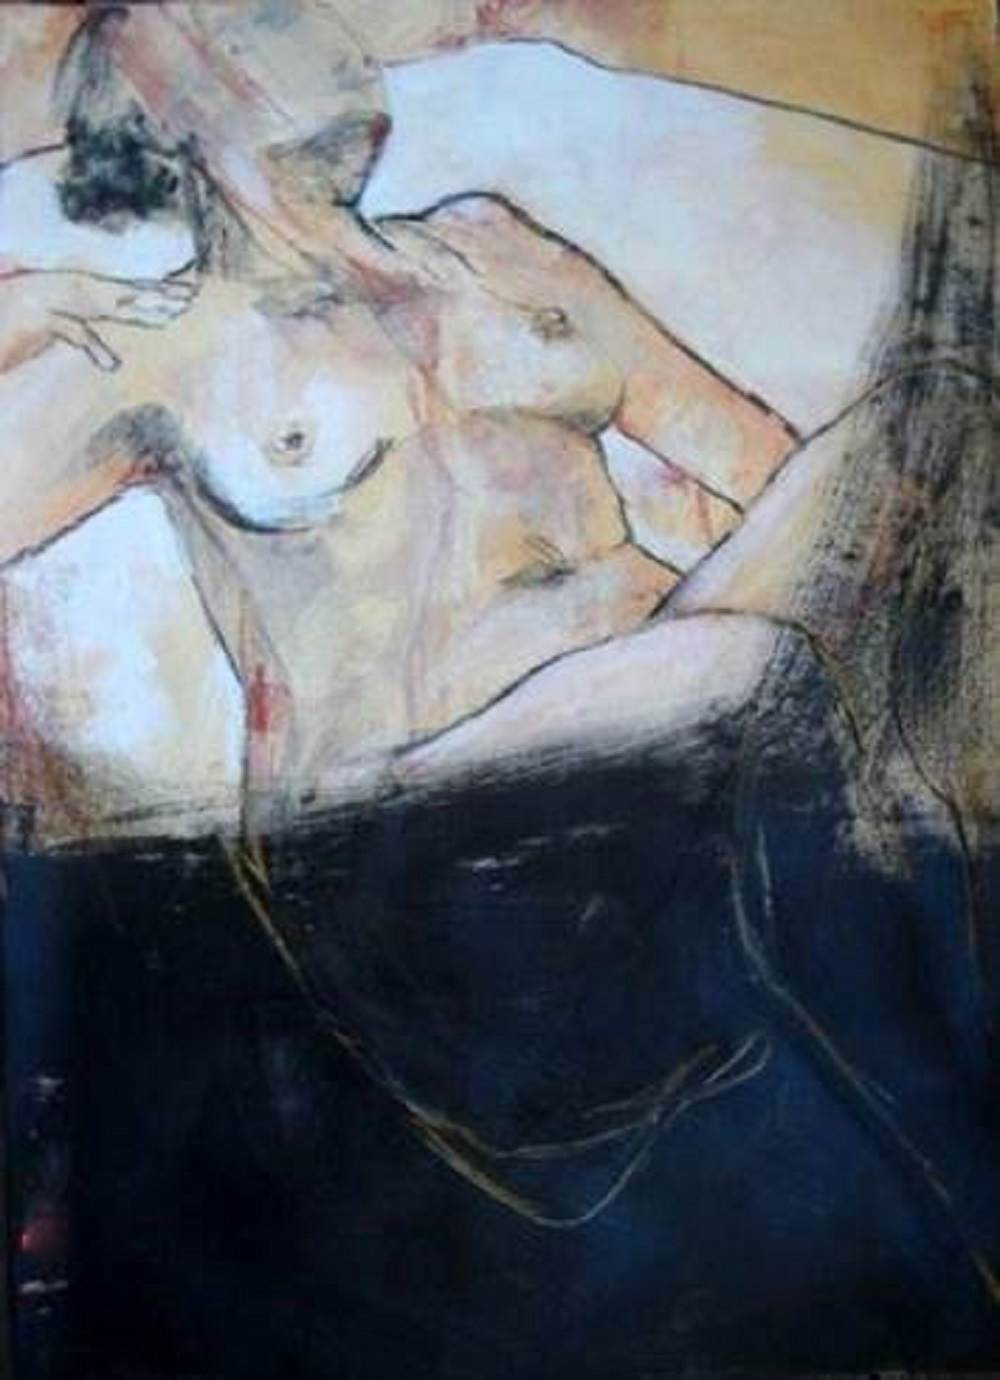 Mon coeur qui bat, original Human Figure Mixed Technique Painting by Mónica de Morais